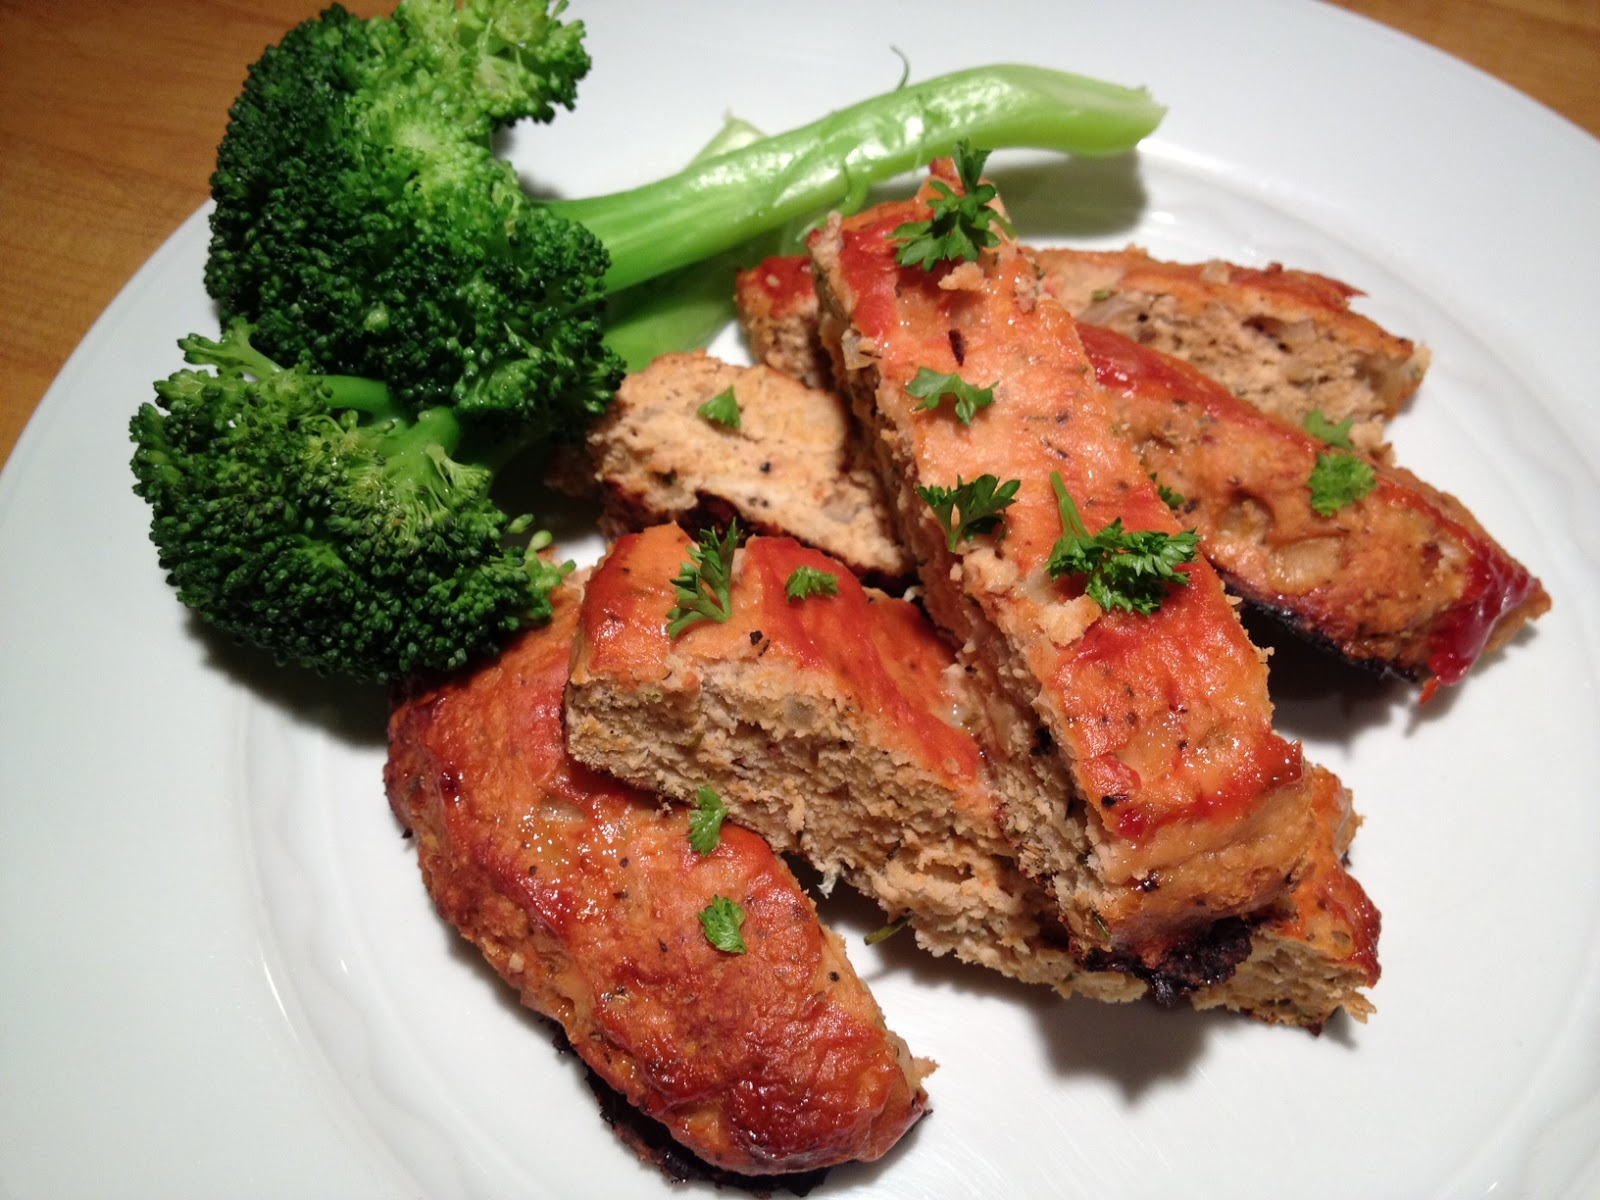 Turkey Meatloaf with Rosemary and Thyme Recipe - The Lemon Bowl